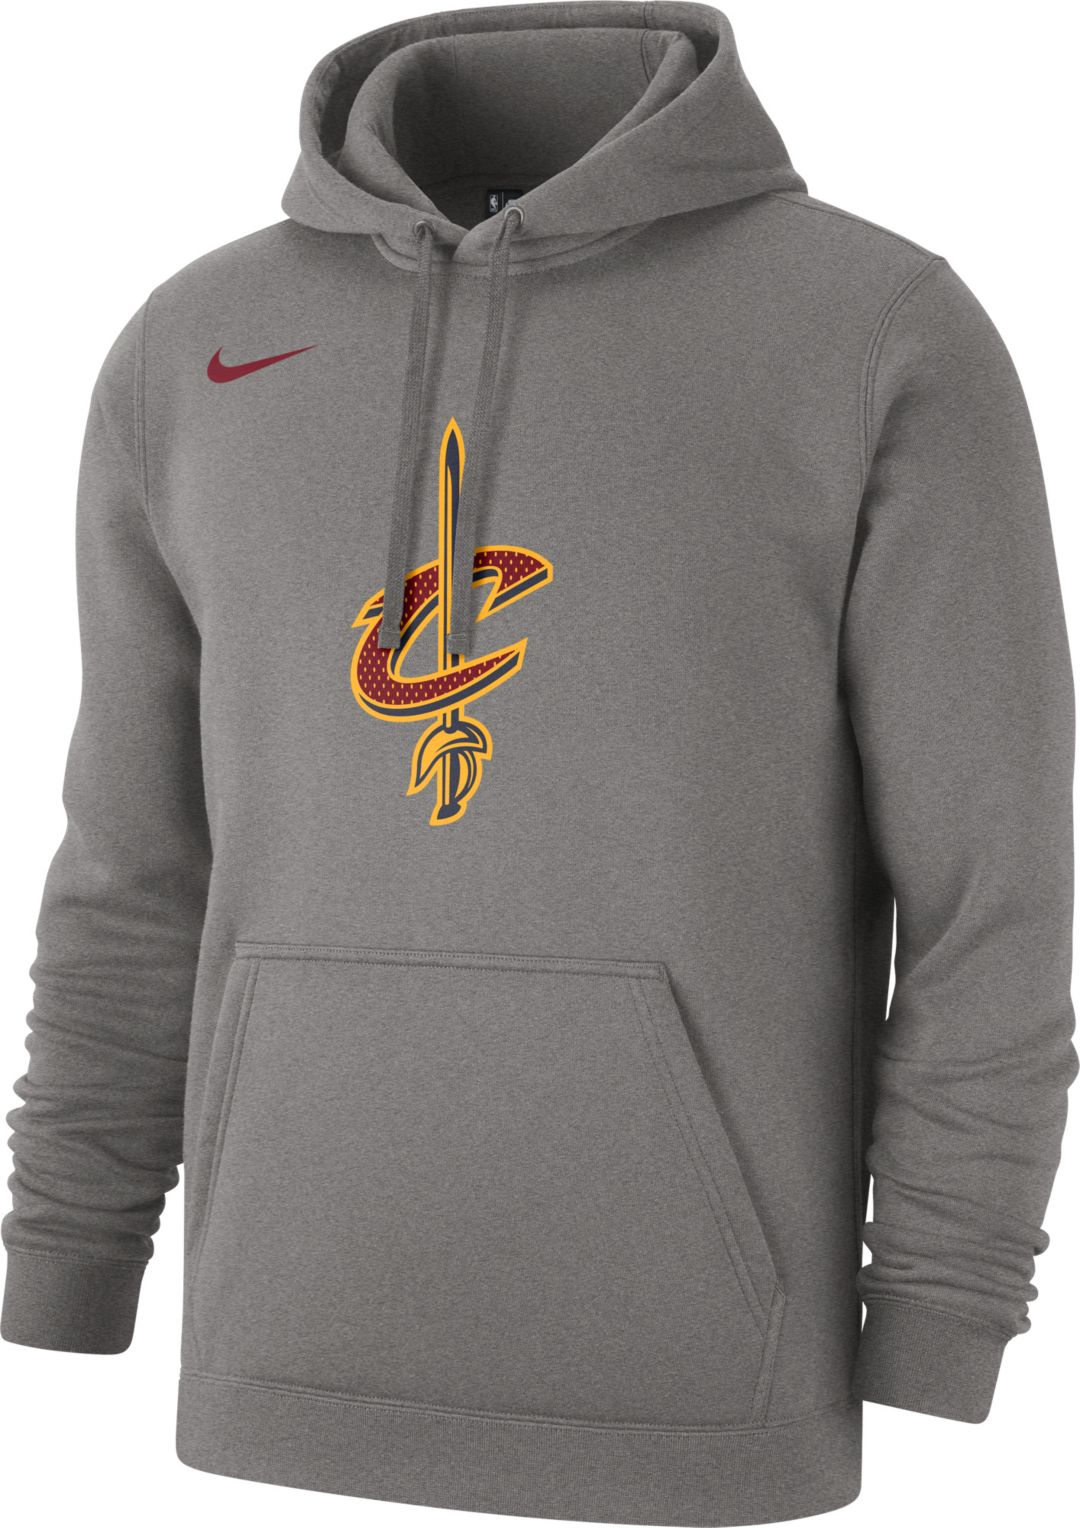 huge selection of 360c5 088a2 Nike Men's Cleveland Cavaliers Pullover Hoodie